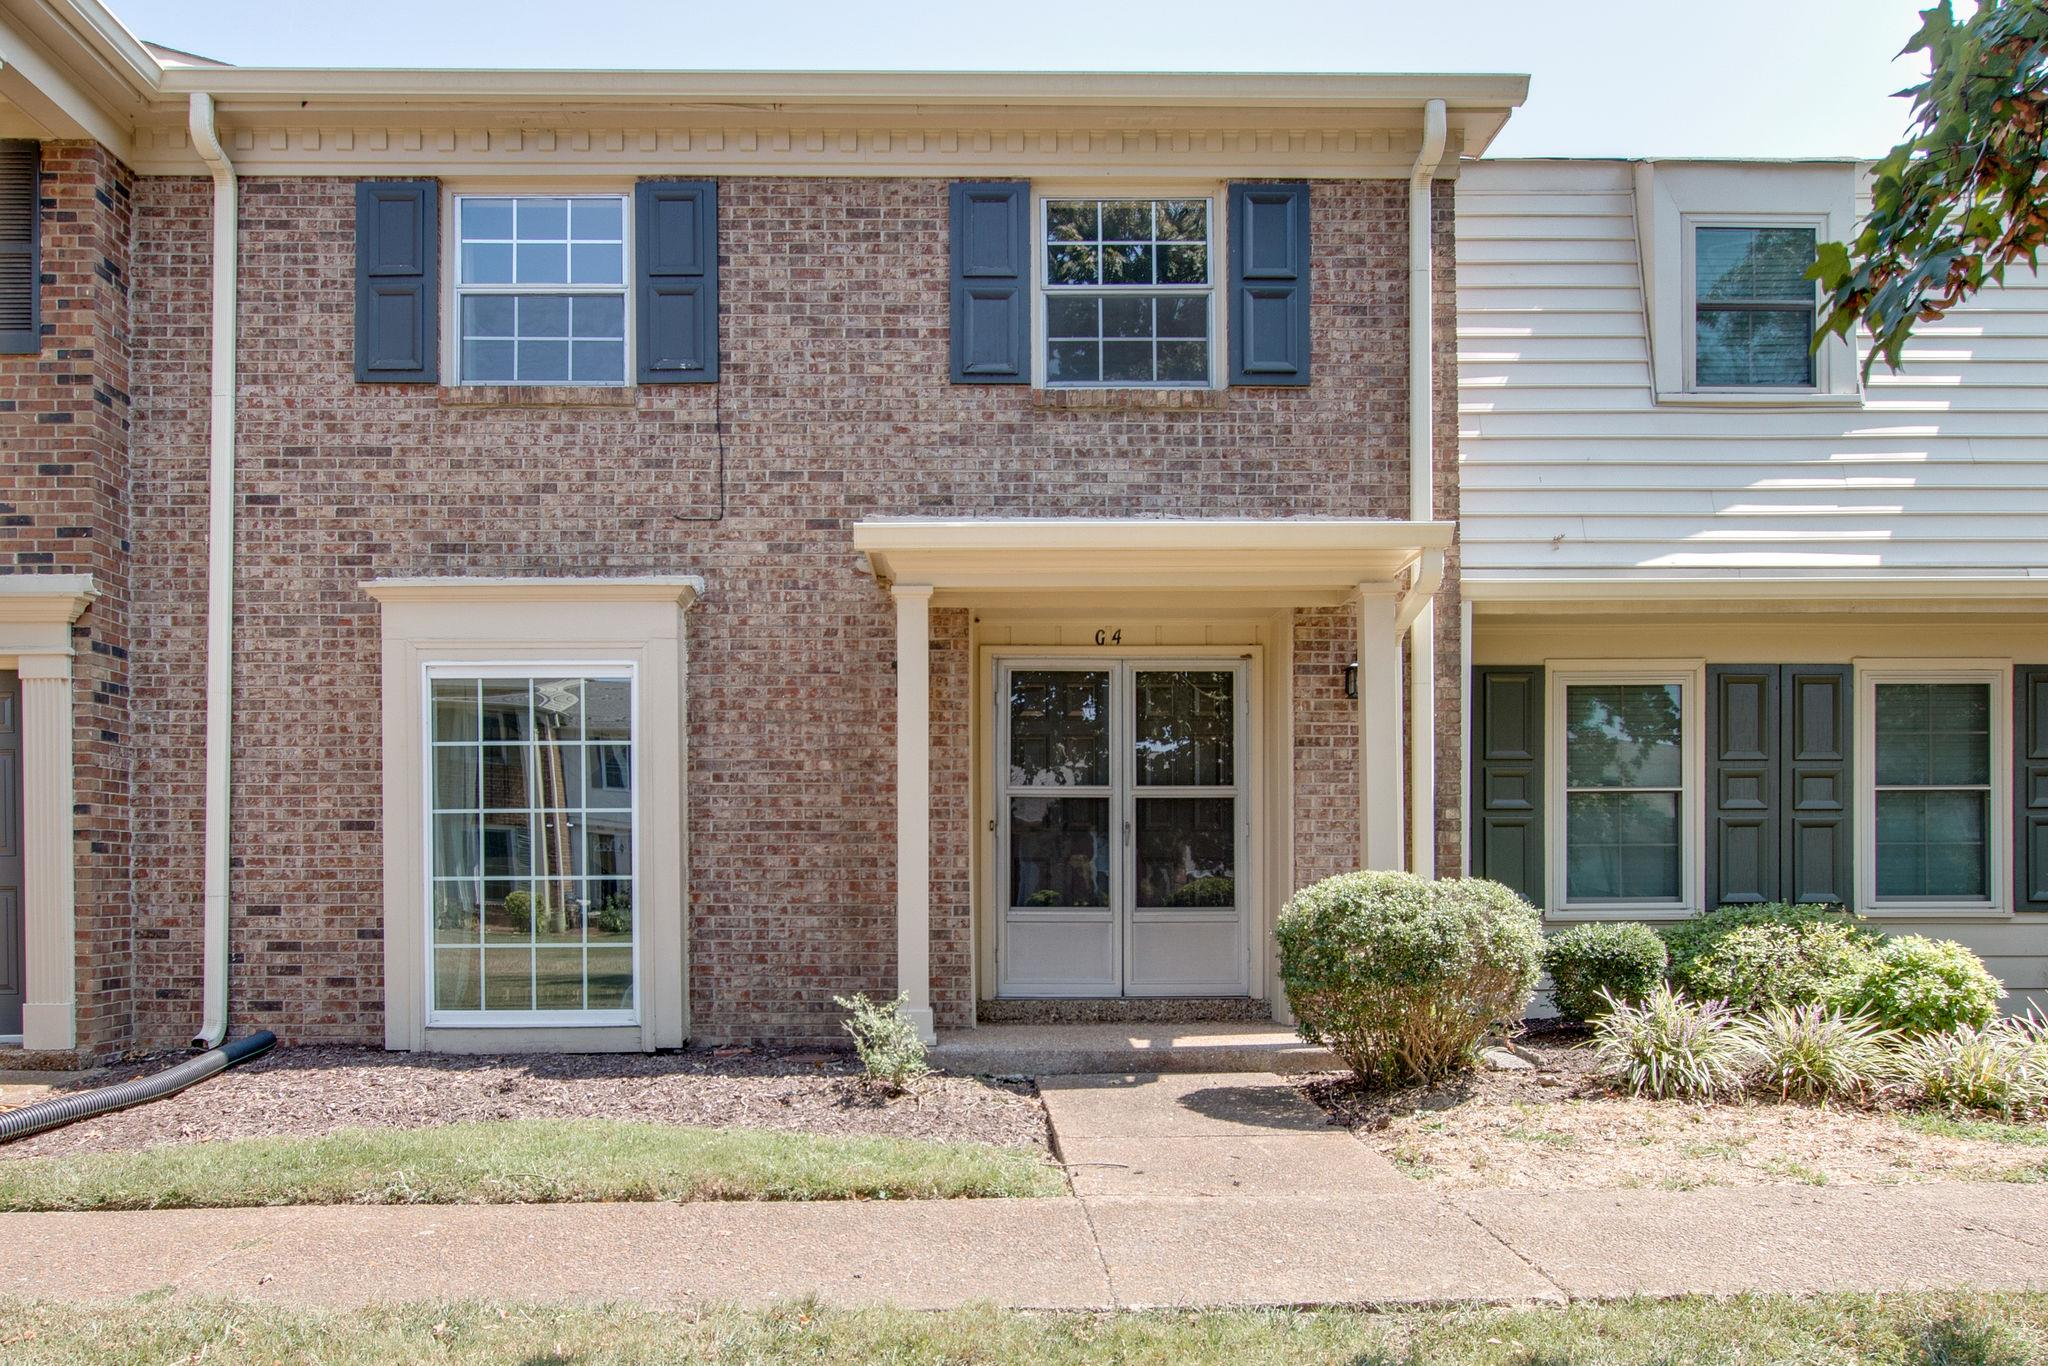 8207 Sawyer Brown Rd Apt G4, Bellevue in Davidson County County, TN 37221 Home for Sale